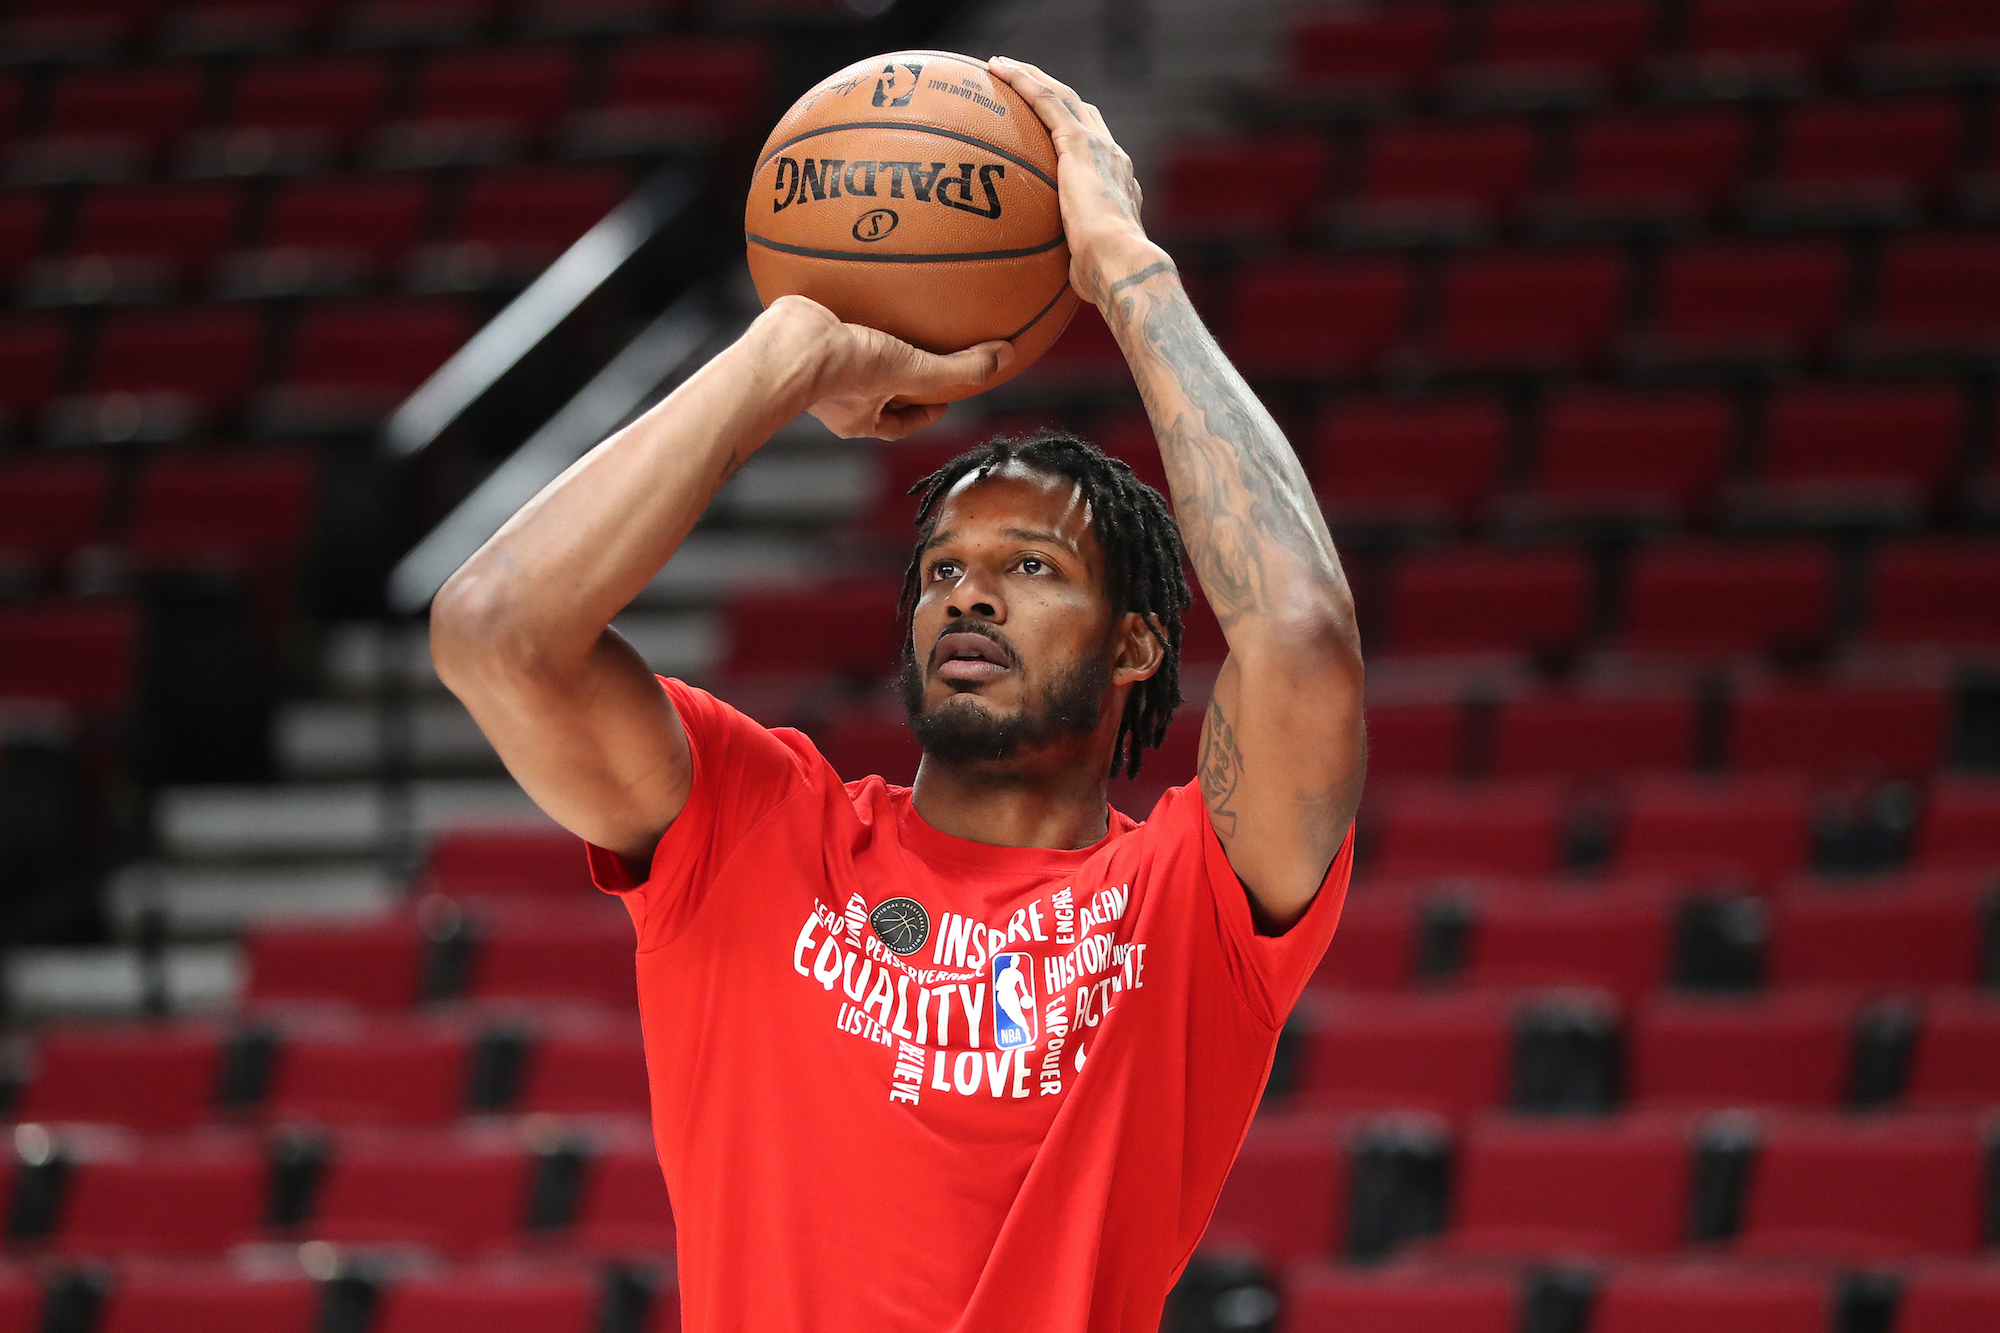 Trevor Ariza will be giving up a portion of his salary to spend time with his son.